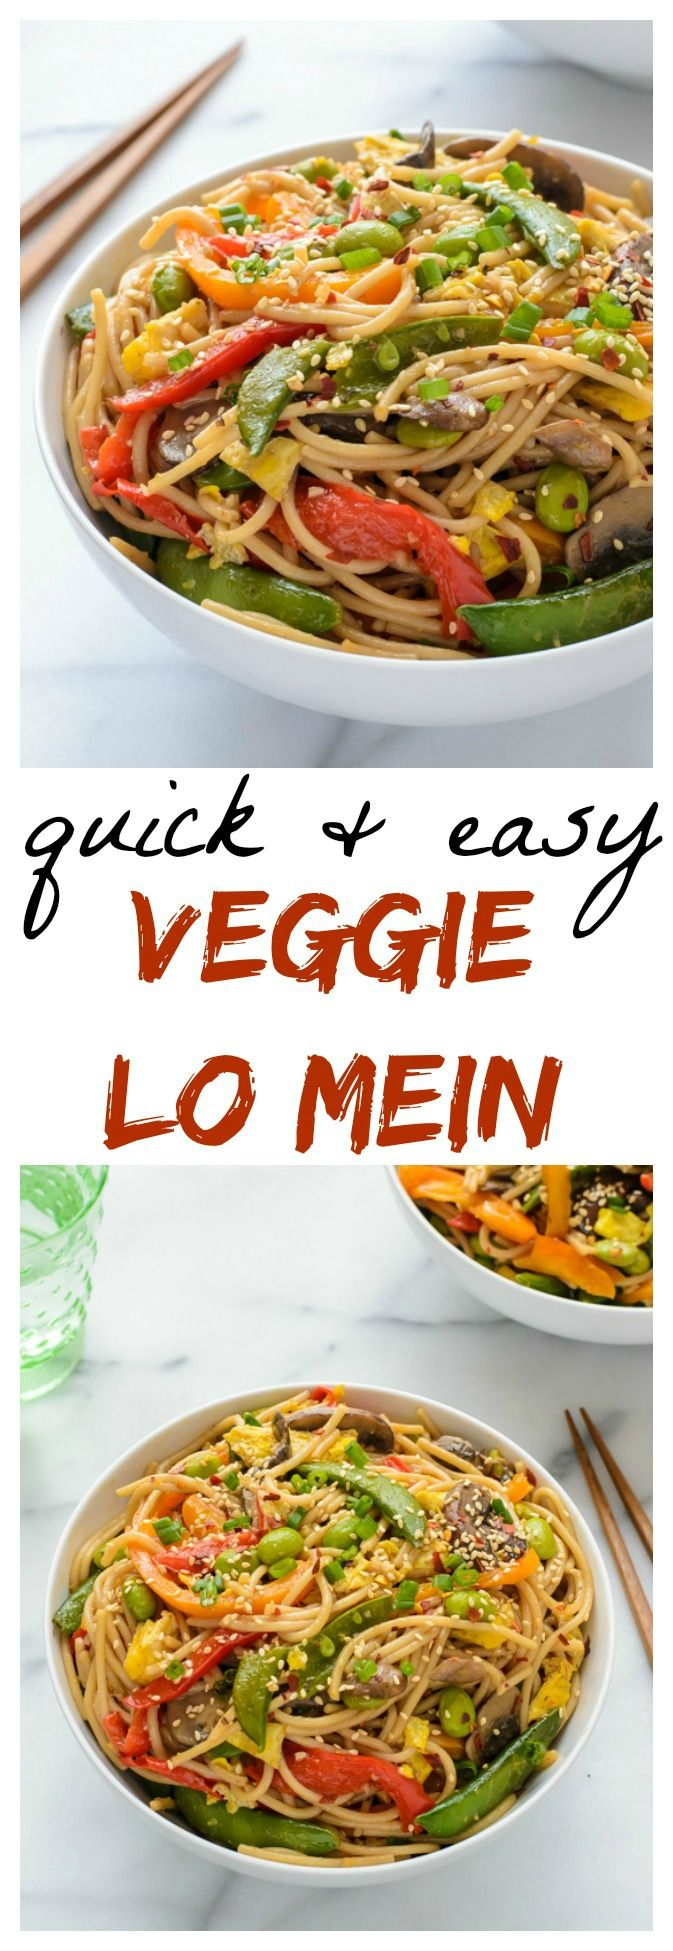 I'm never getting take out again! This Veggie Lo Mein recipe is so quick and easy. Filled with protein, veggies and gluten free!